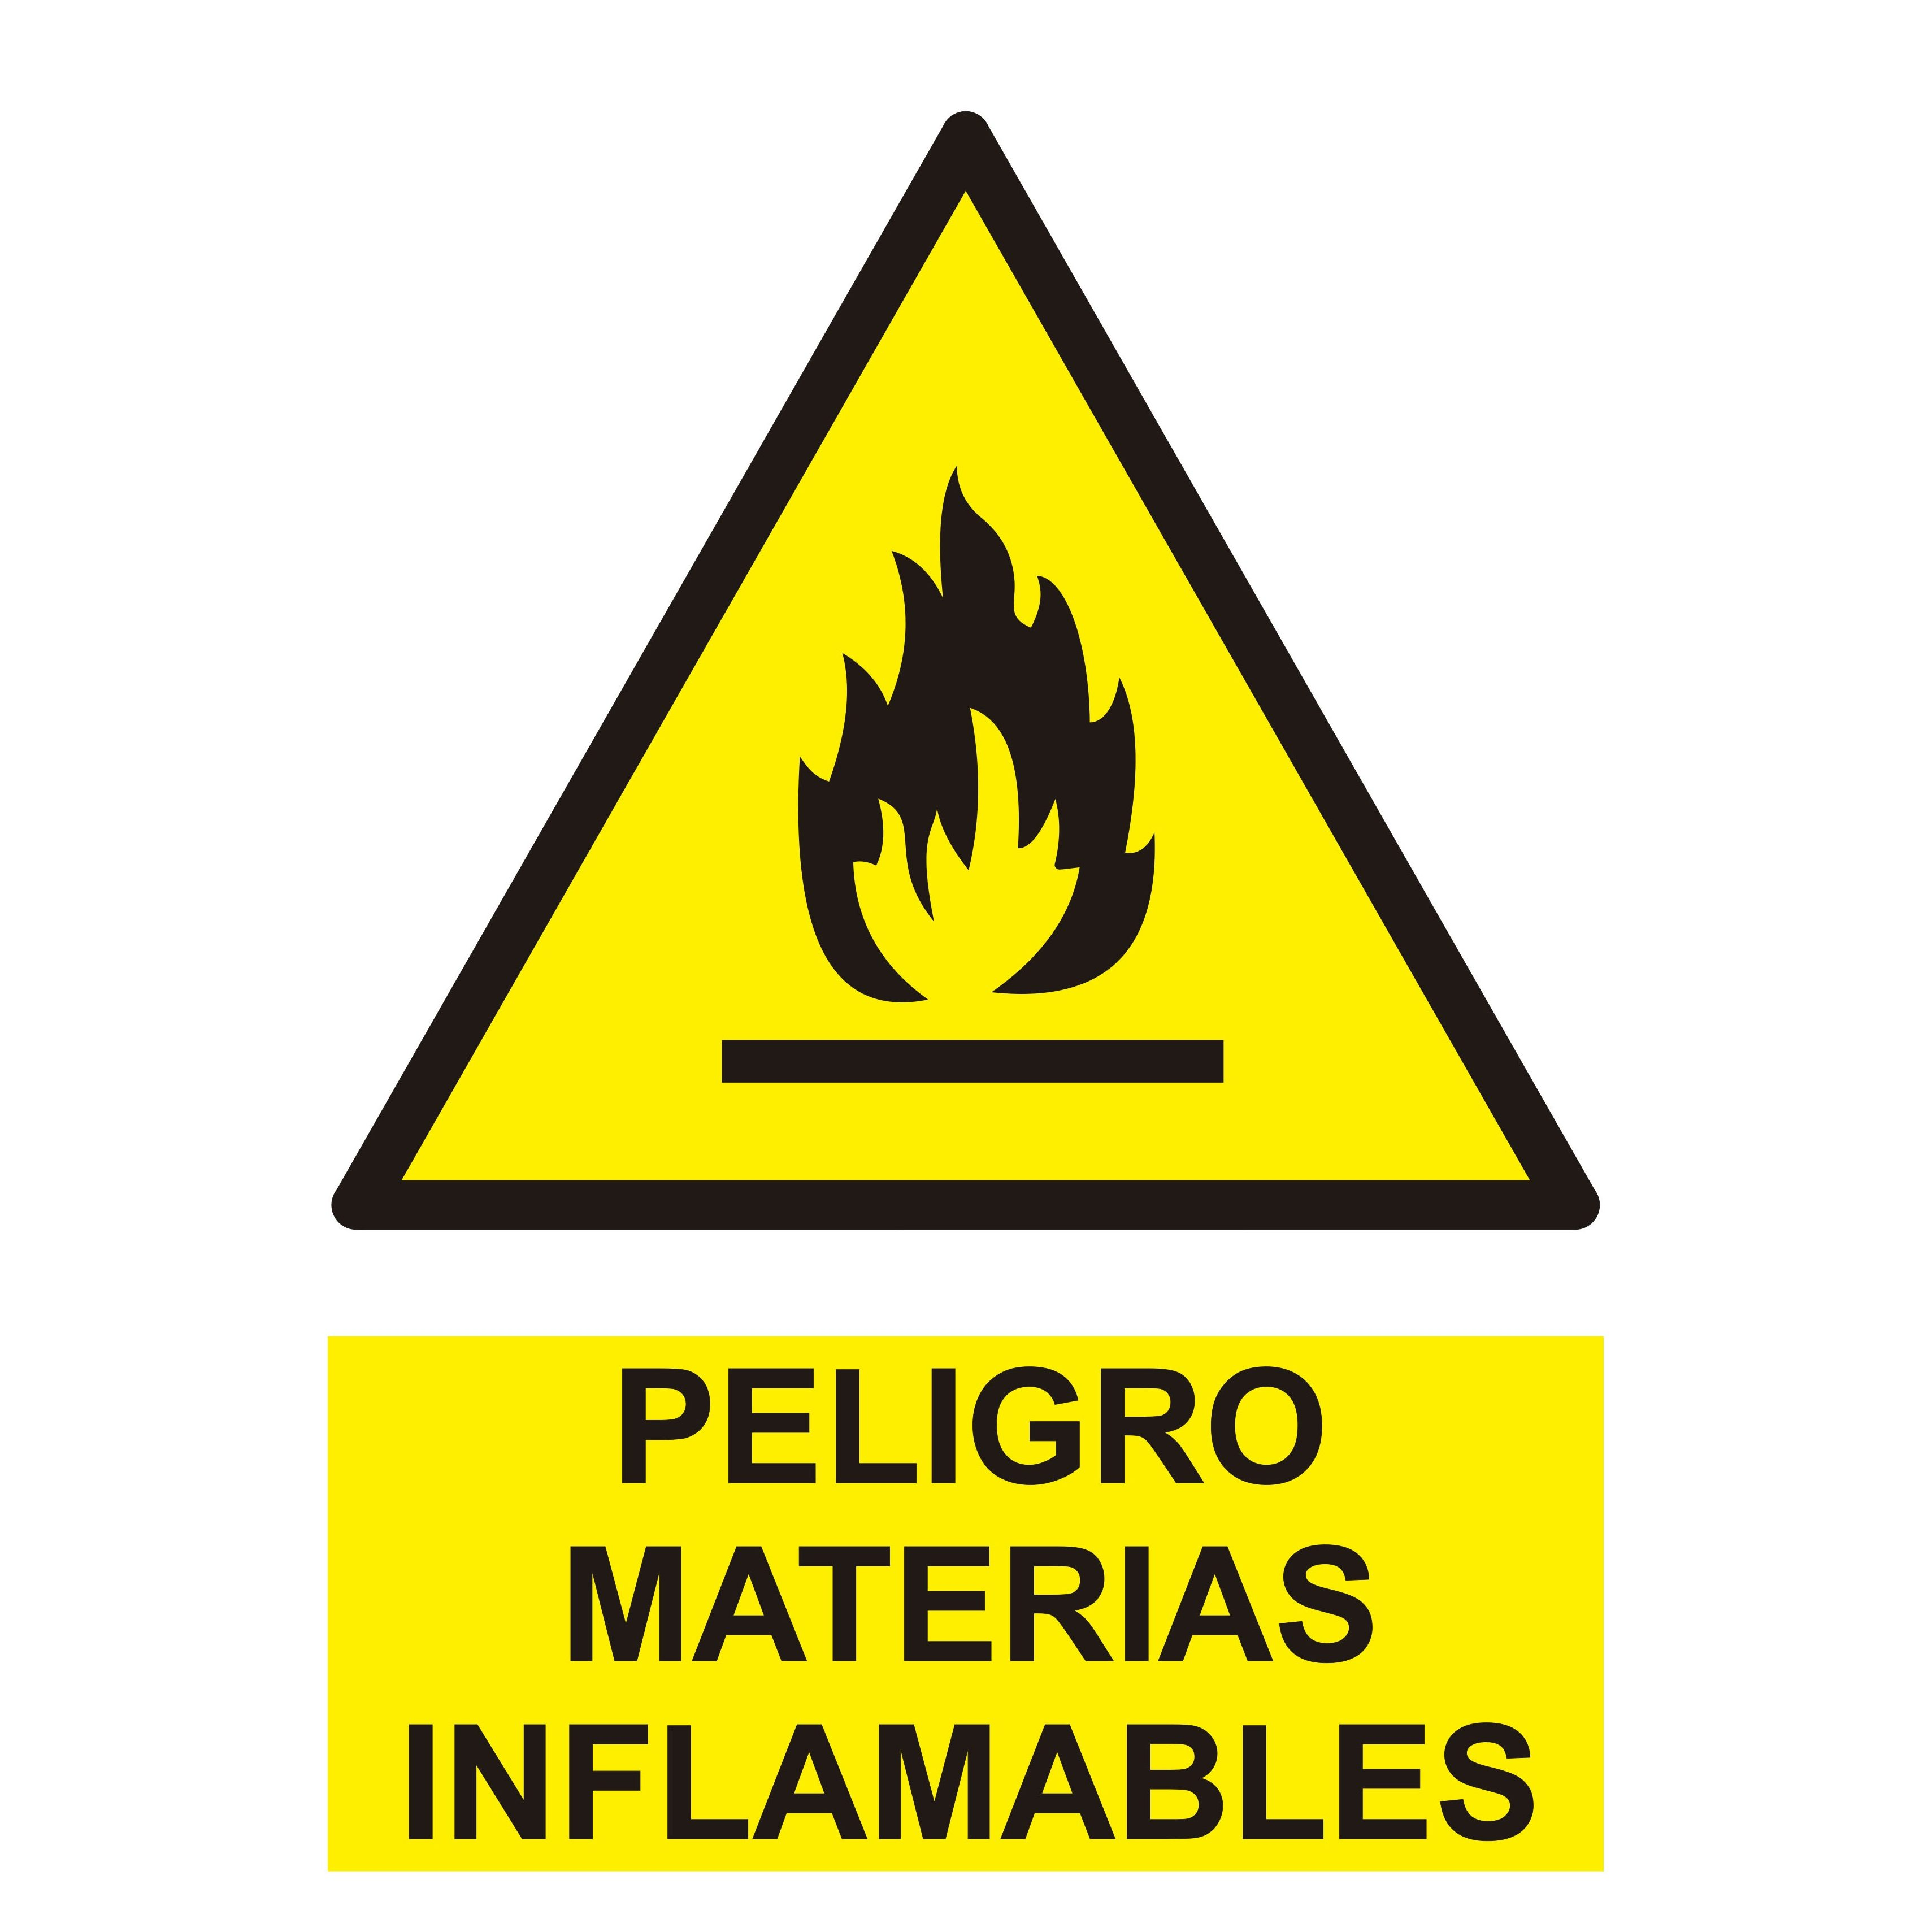 Señal PELIGRO MATERIAS INFLAMABLES